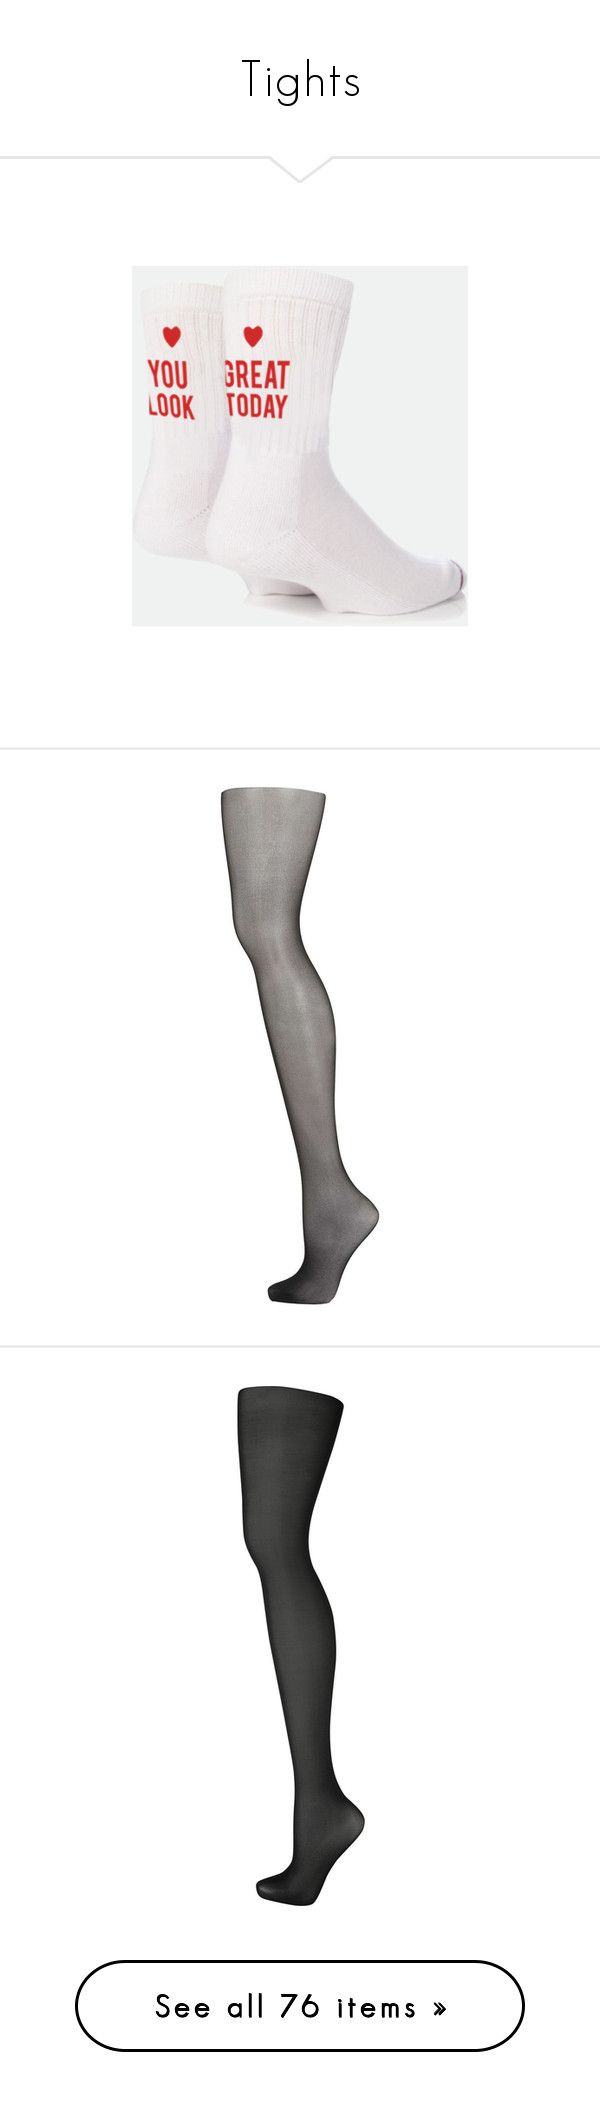 """""""Tights"""" by smilie-anne ❤ liked on Polyvore featuring intimates, hosiery, socks, tights, black, nylon tights, panty hose stockings, pantyhose stockings, nylon stockings and sheer tights"""